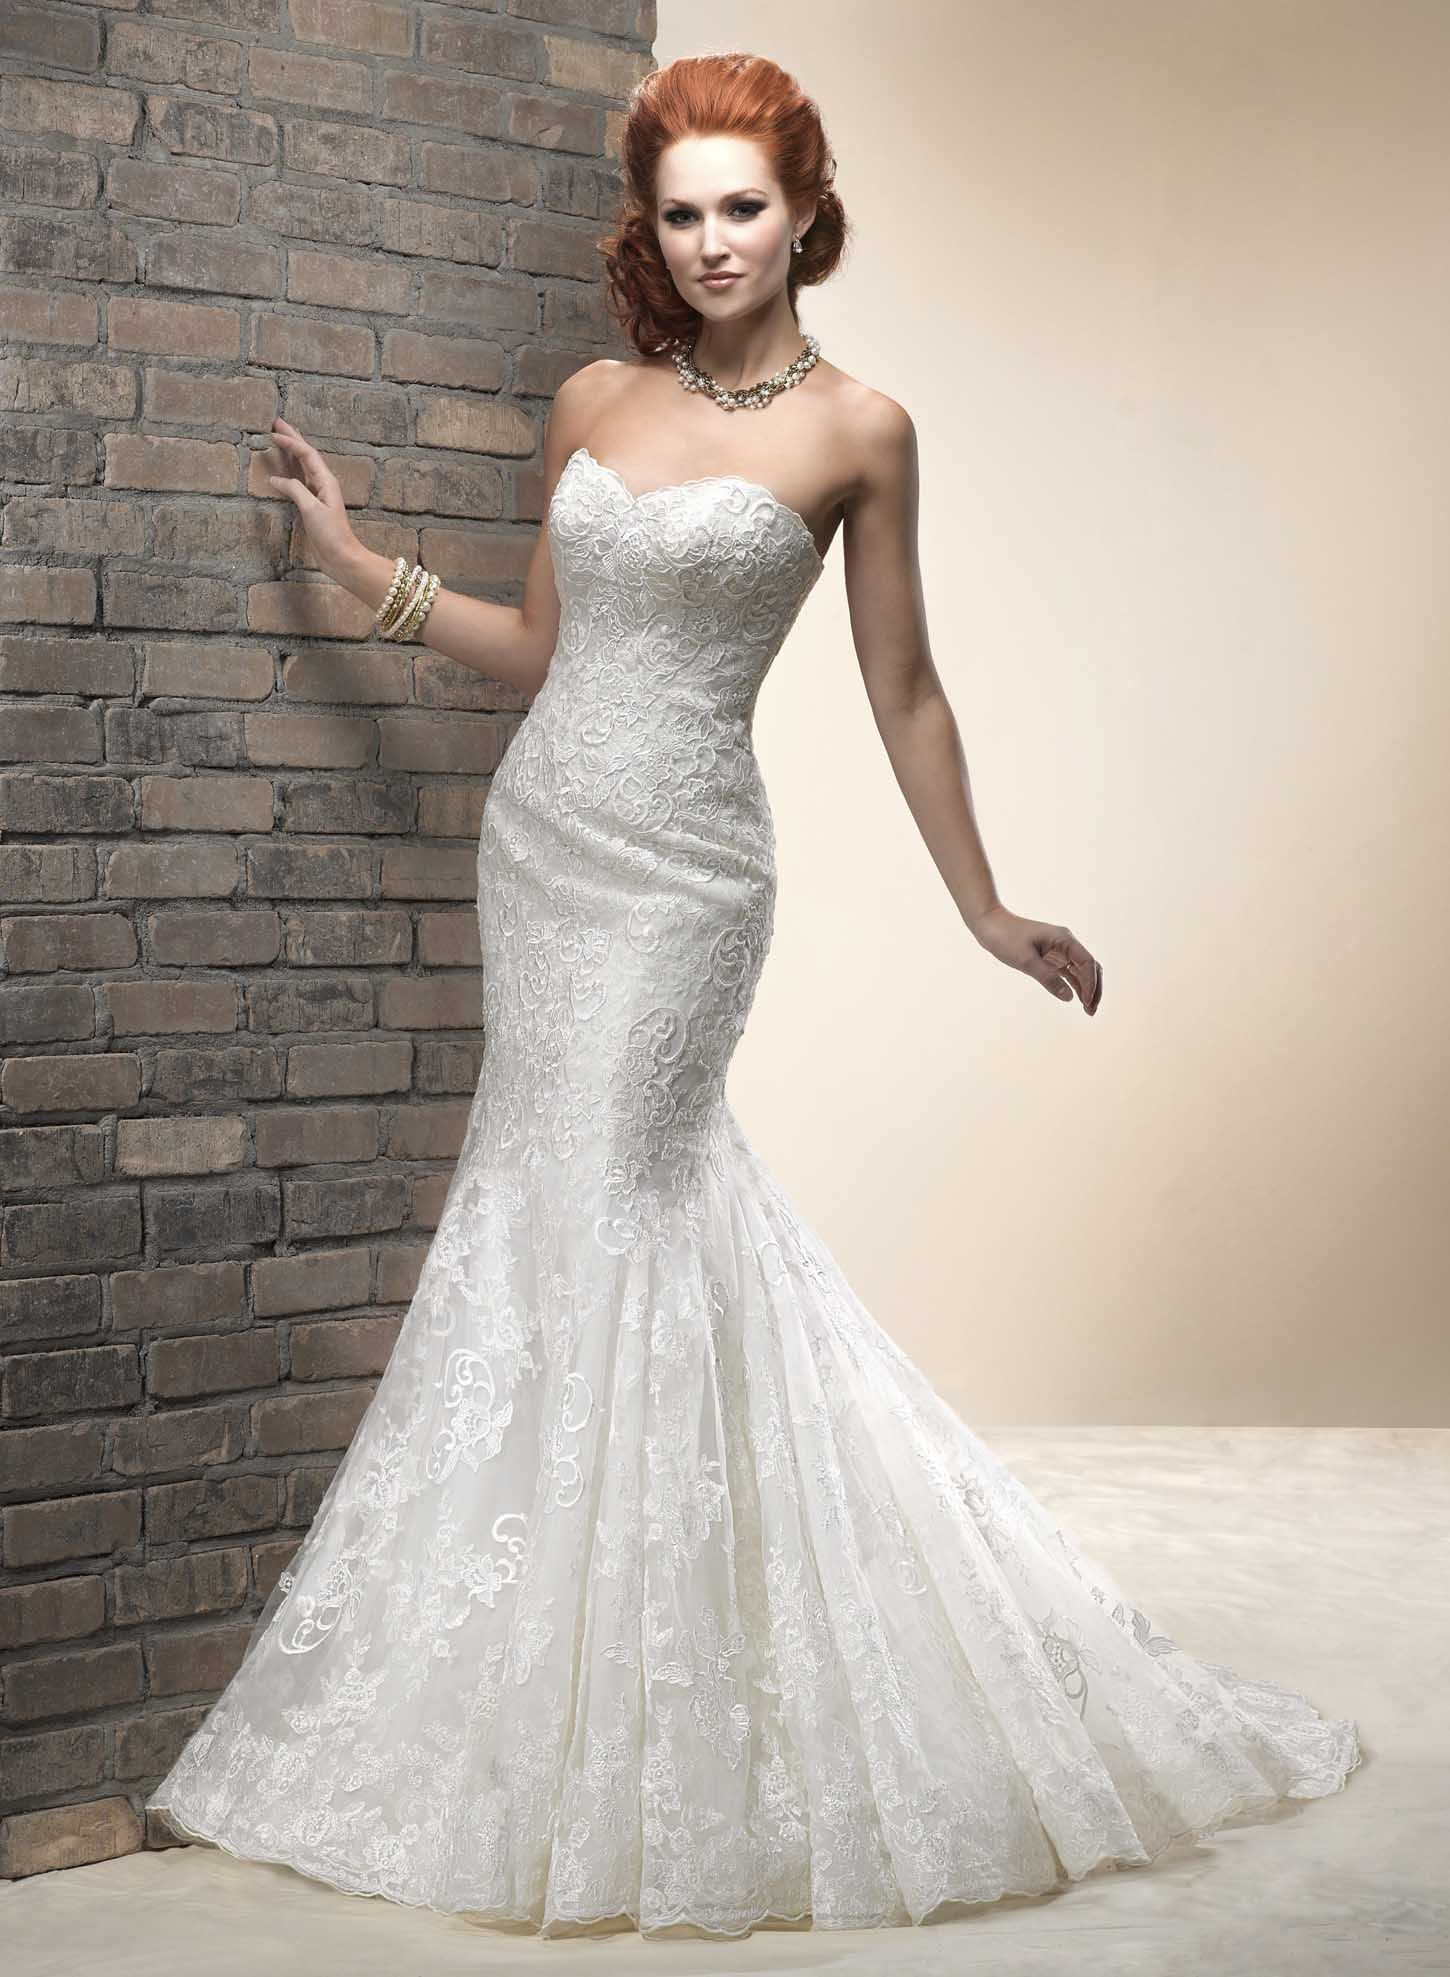 Show Your Beauty in Lace Wedding Dresses on Wedding ...